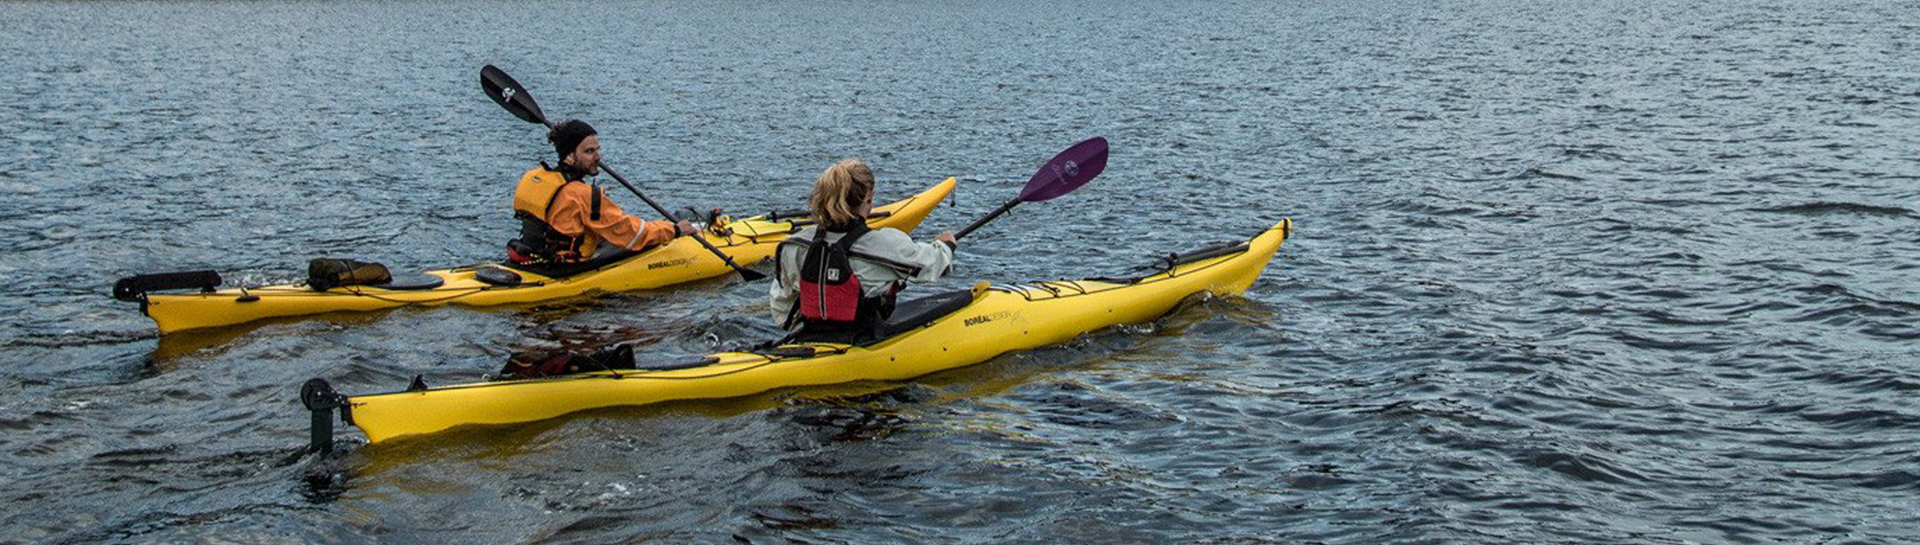 Accent Paddles - Image 15